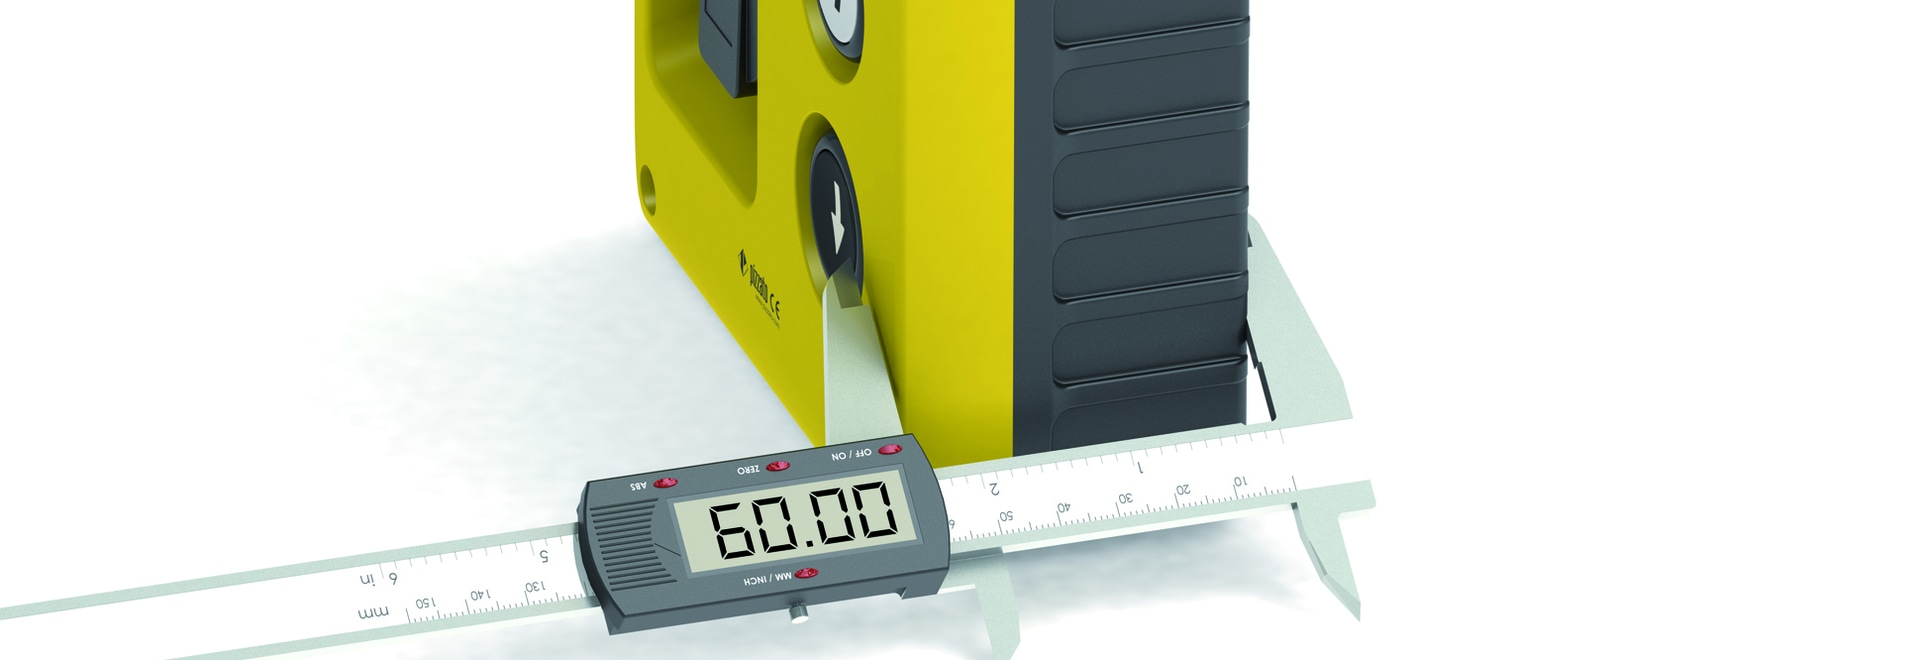 Lift control stations with 60mm-reduced height